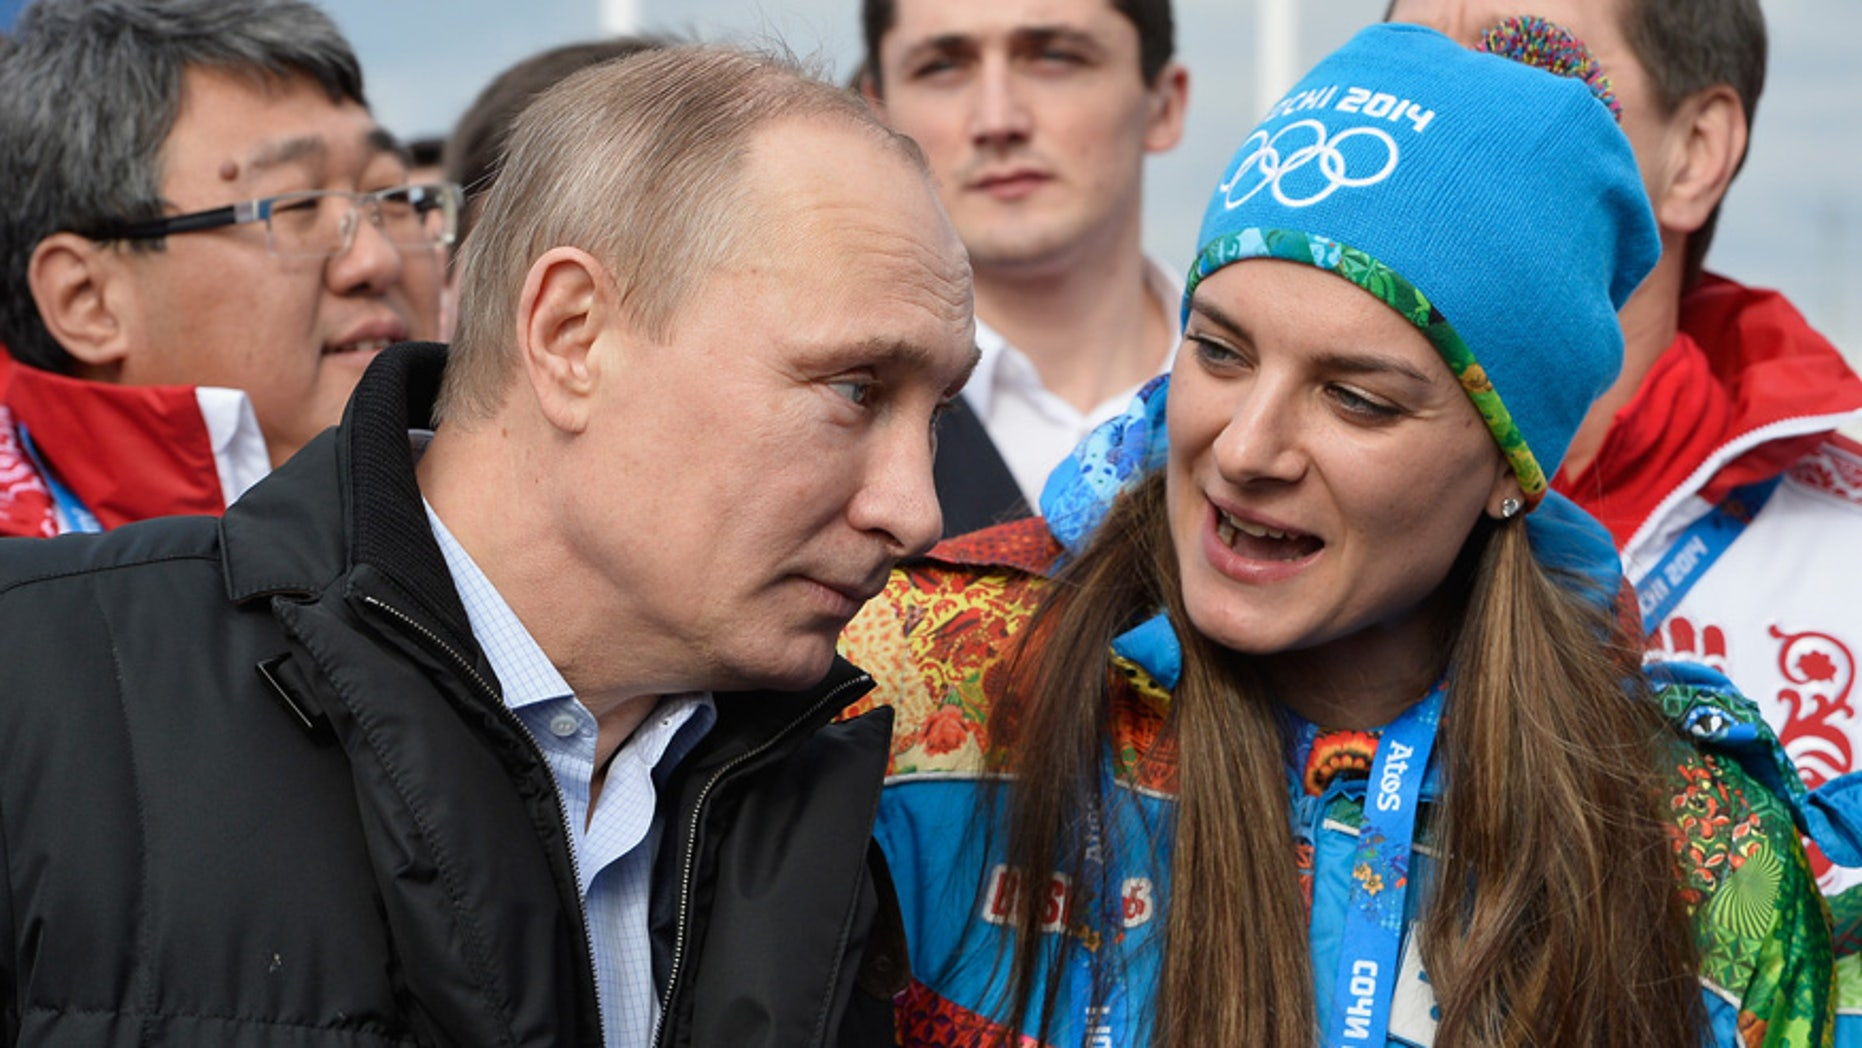 In this Feb. 5, 2014 file photo Russian President Vladimir Putin speaks with Olympic Village Mayor Elena Isinbaeva while visiting the Coastal Cluster Olympic Village ahead of the Sochi 2014 Winter Olympics in Sochi, Russia.